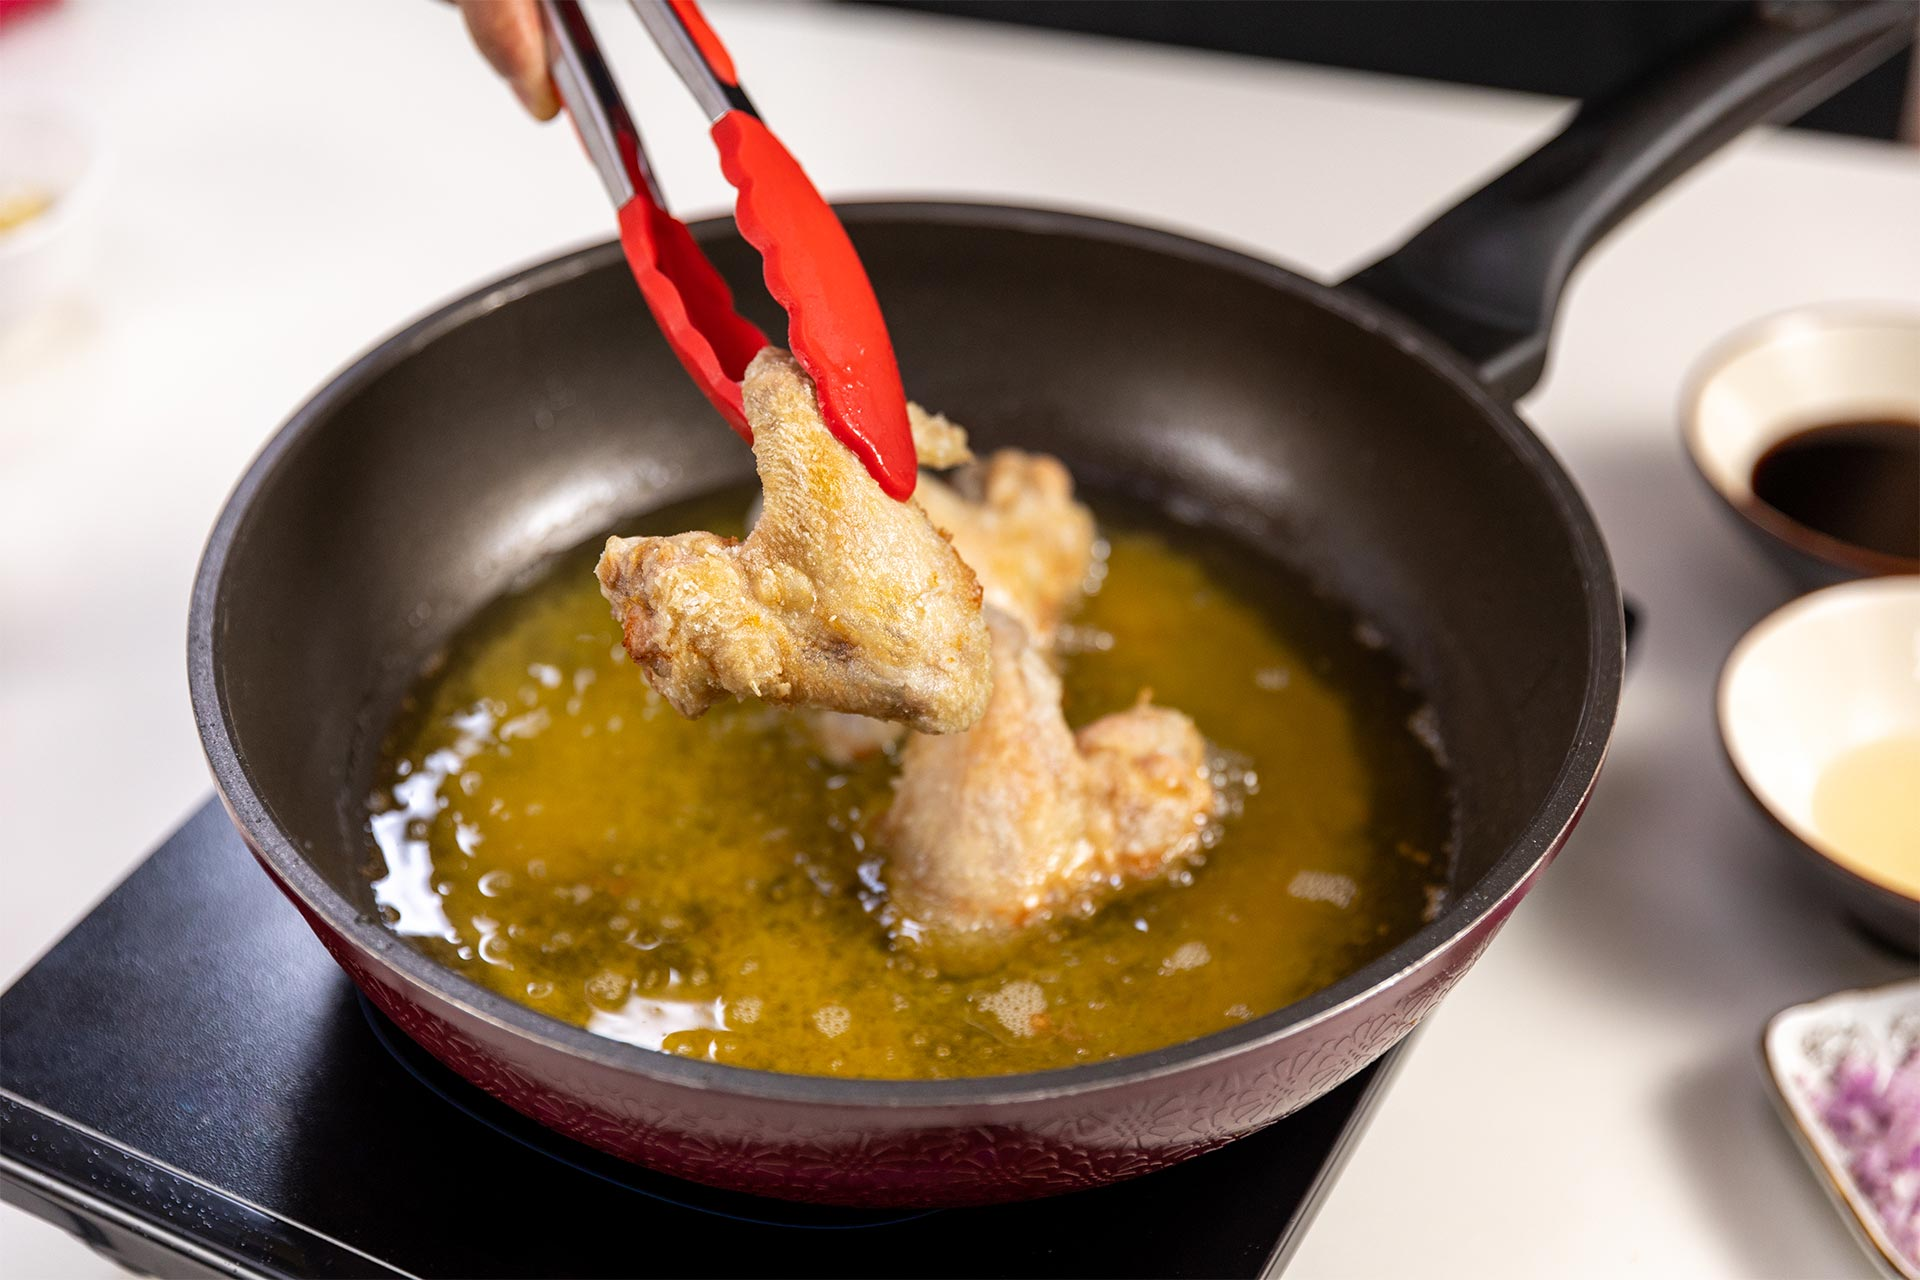 Making the fried chicken